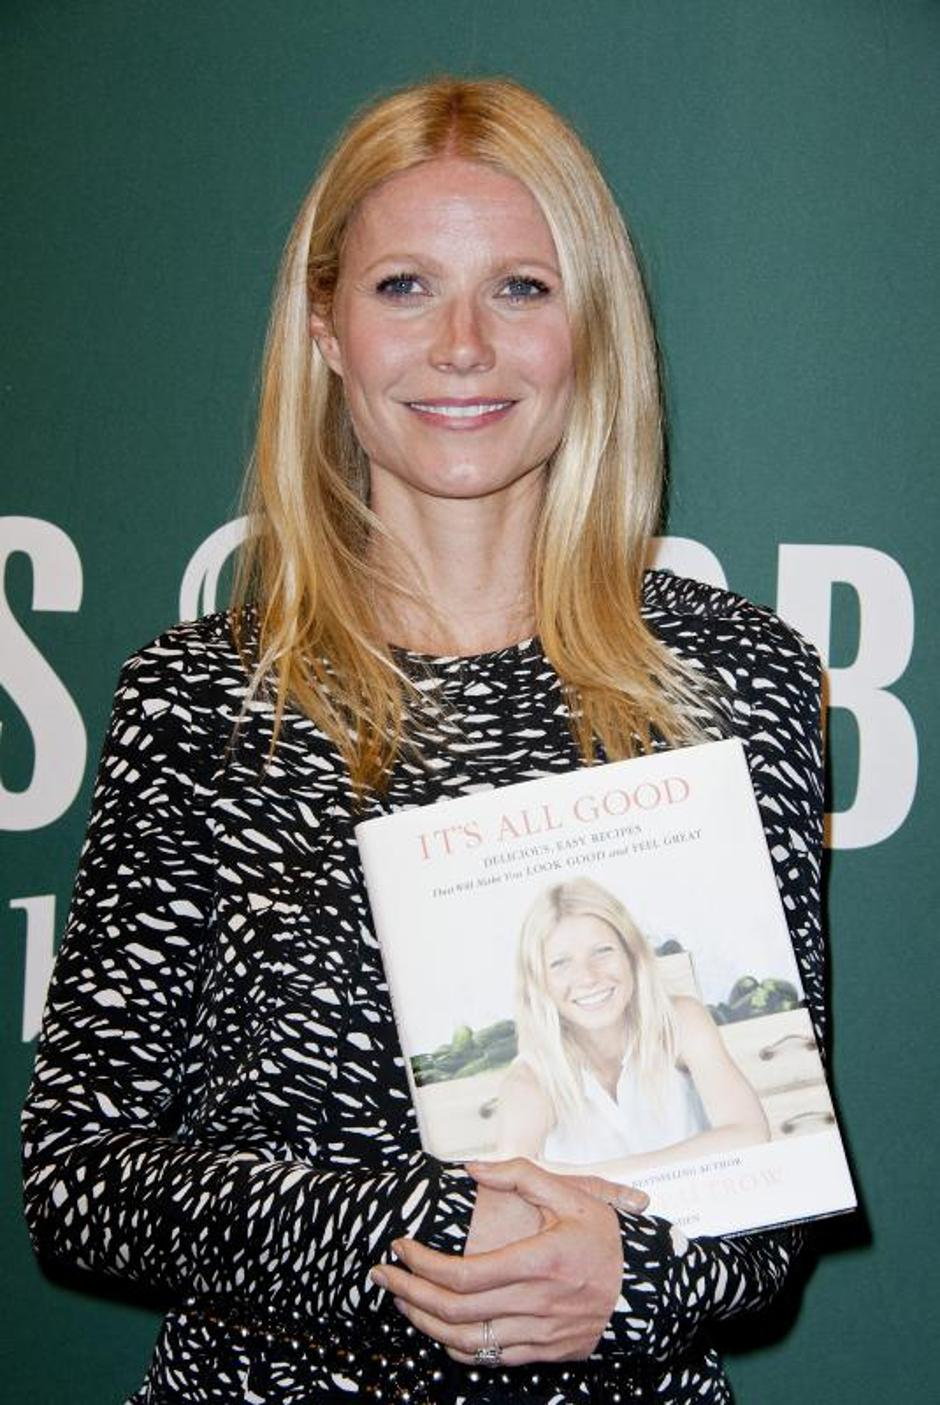 Gwyneth Paltrow | Author: Lionel Hahn/Press Association/PIXSELL